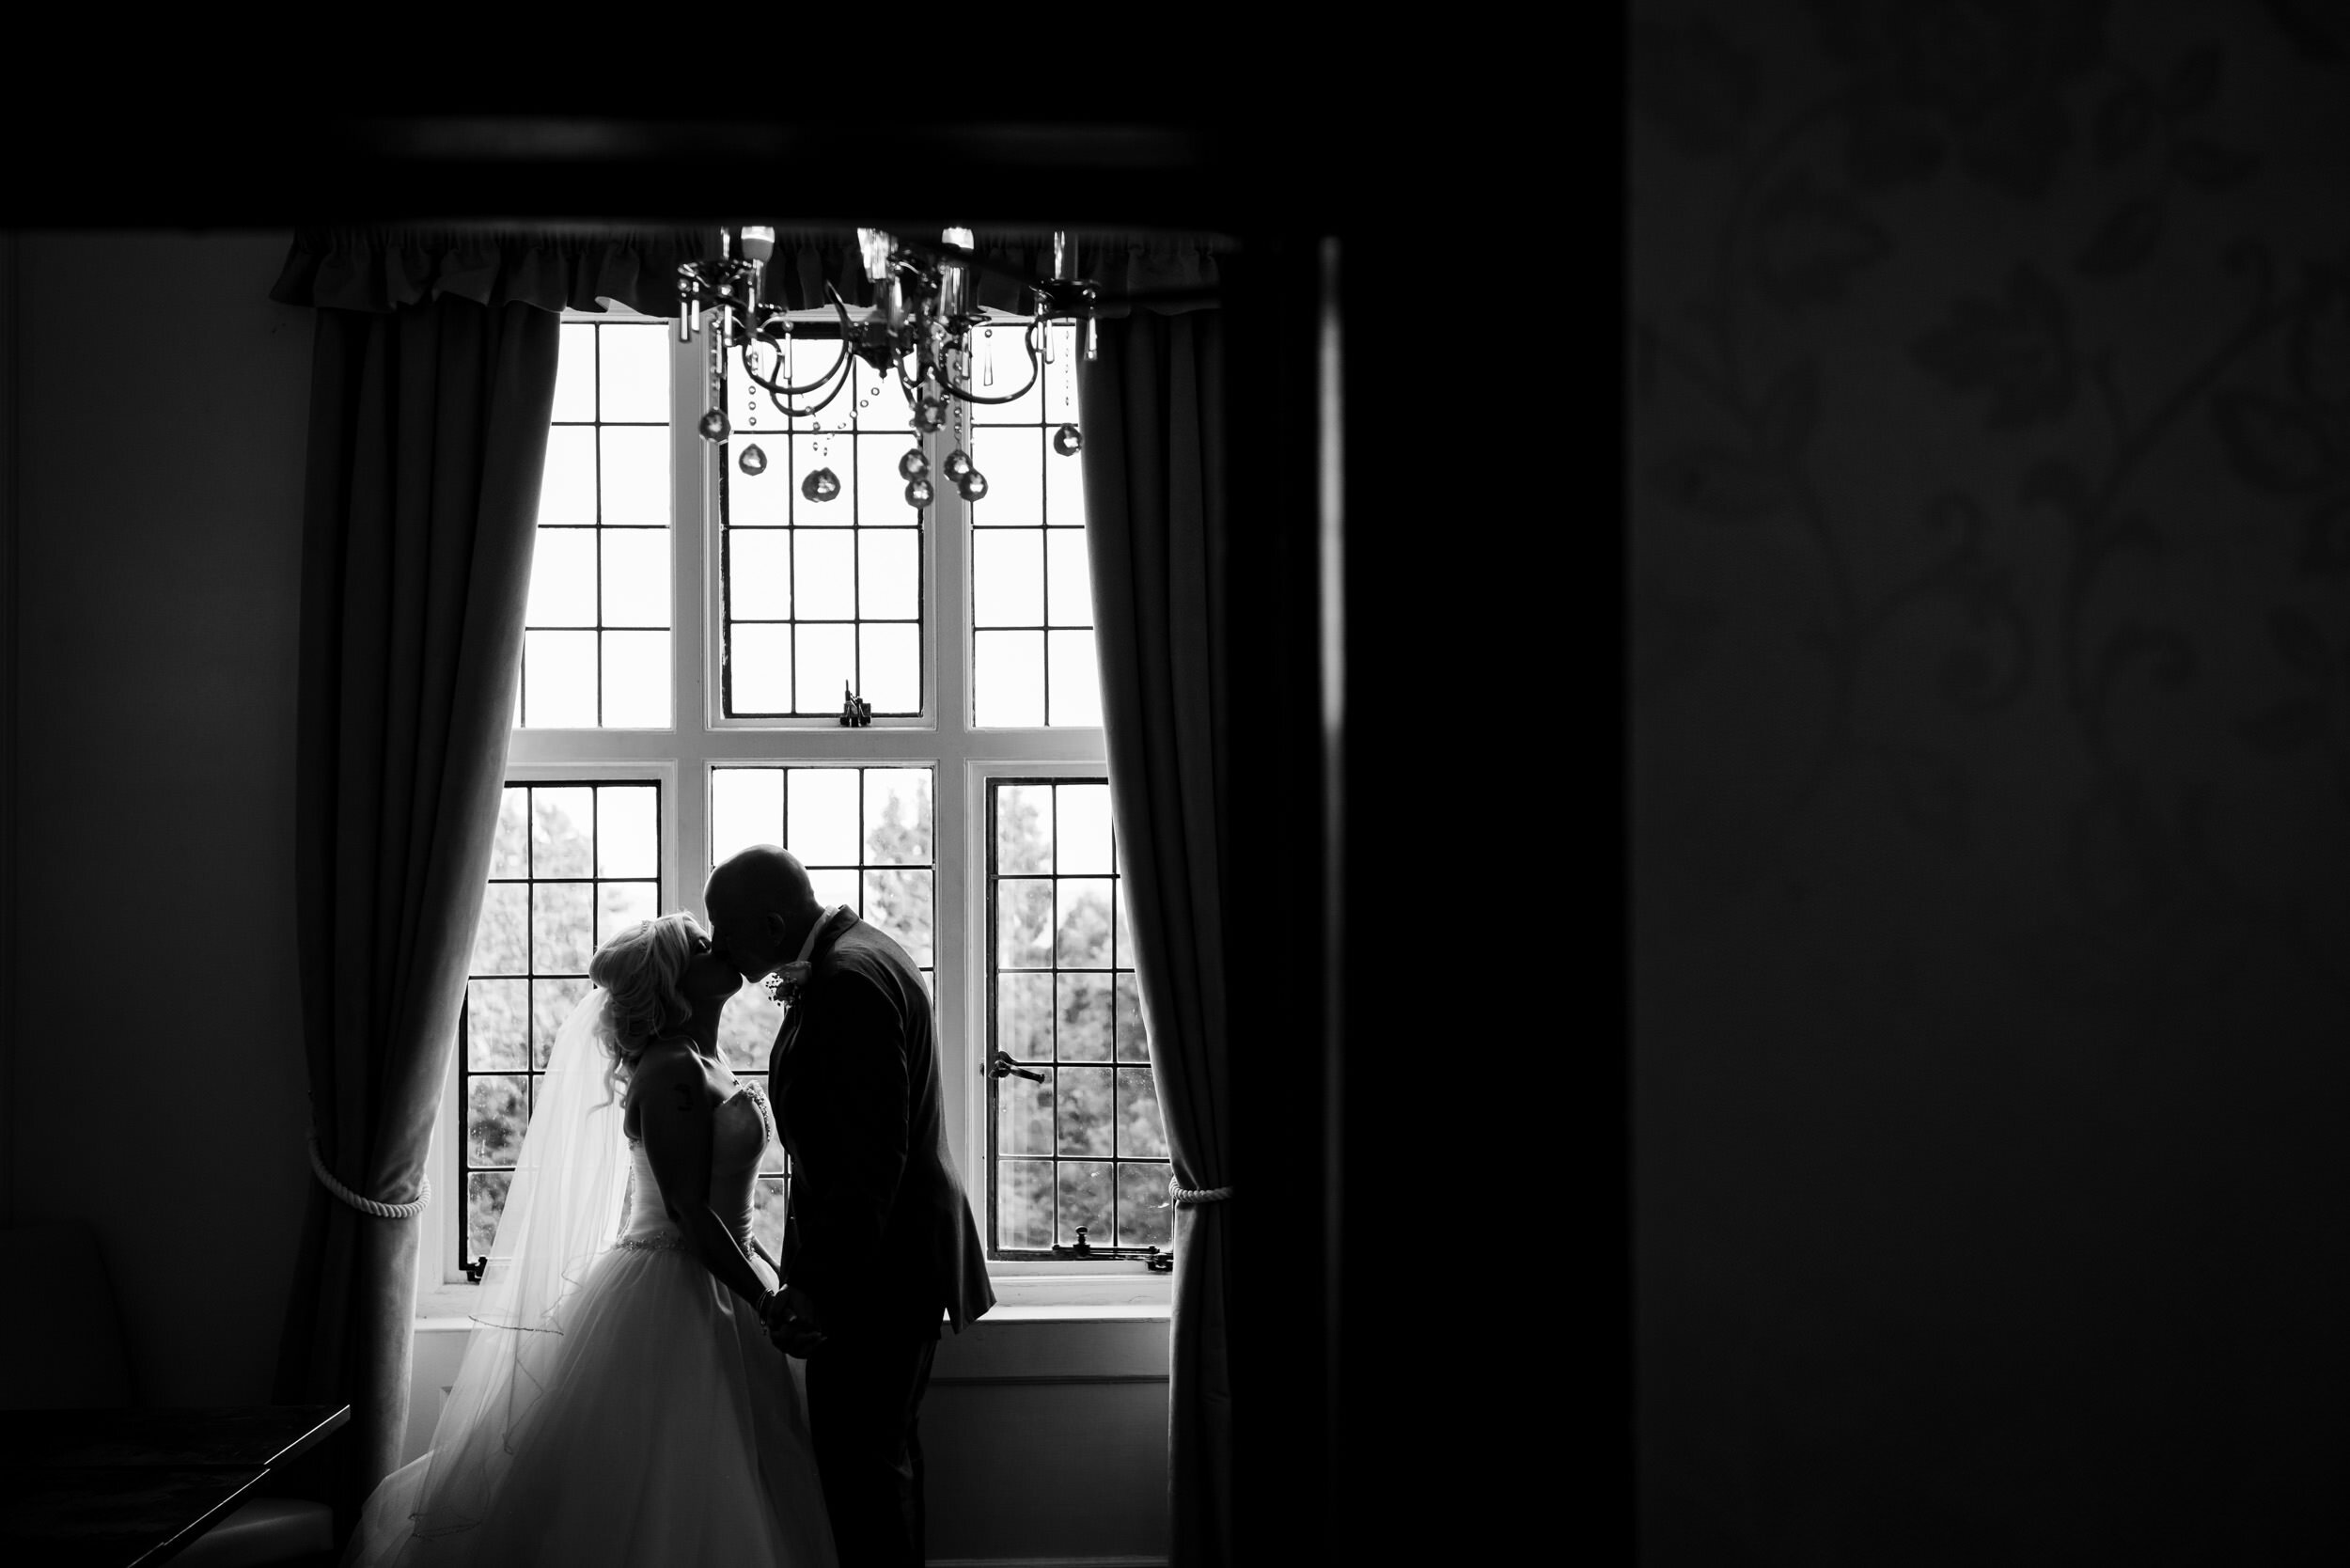 Silhouette image of the Bride and Groom kissing in a bay window at the Southcrest Manor, Redditch